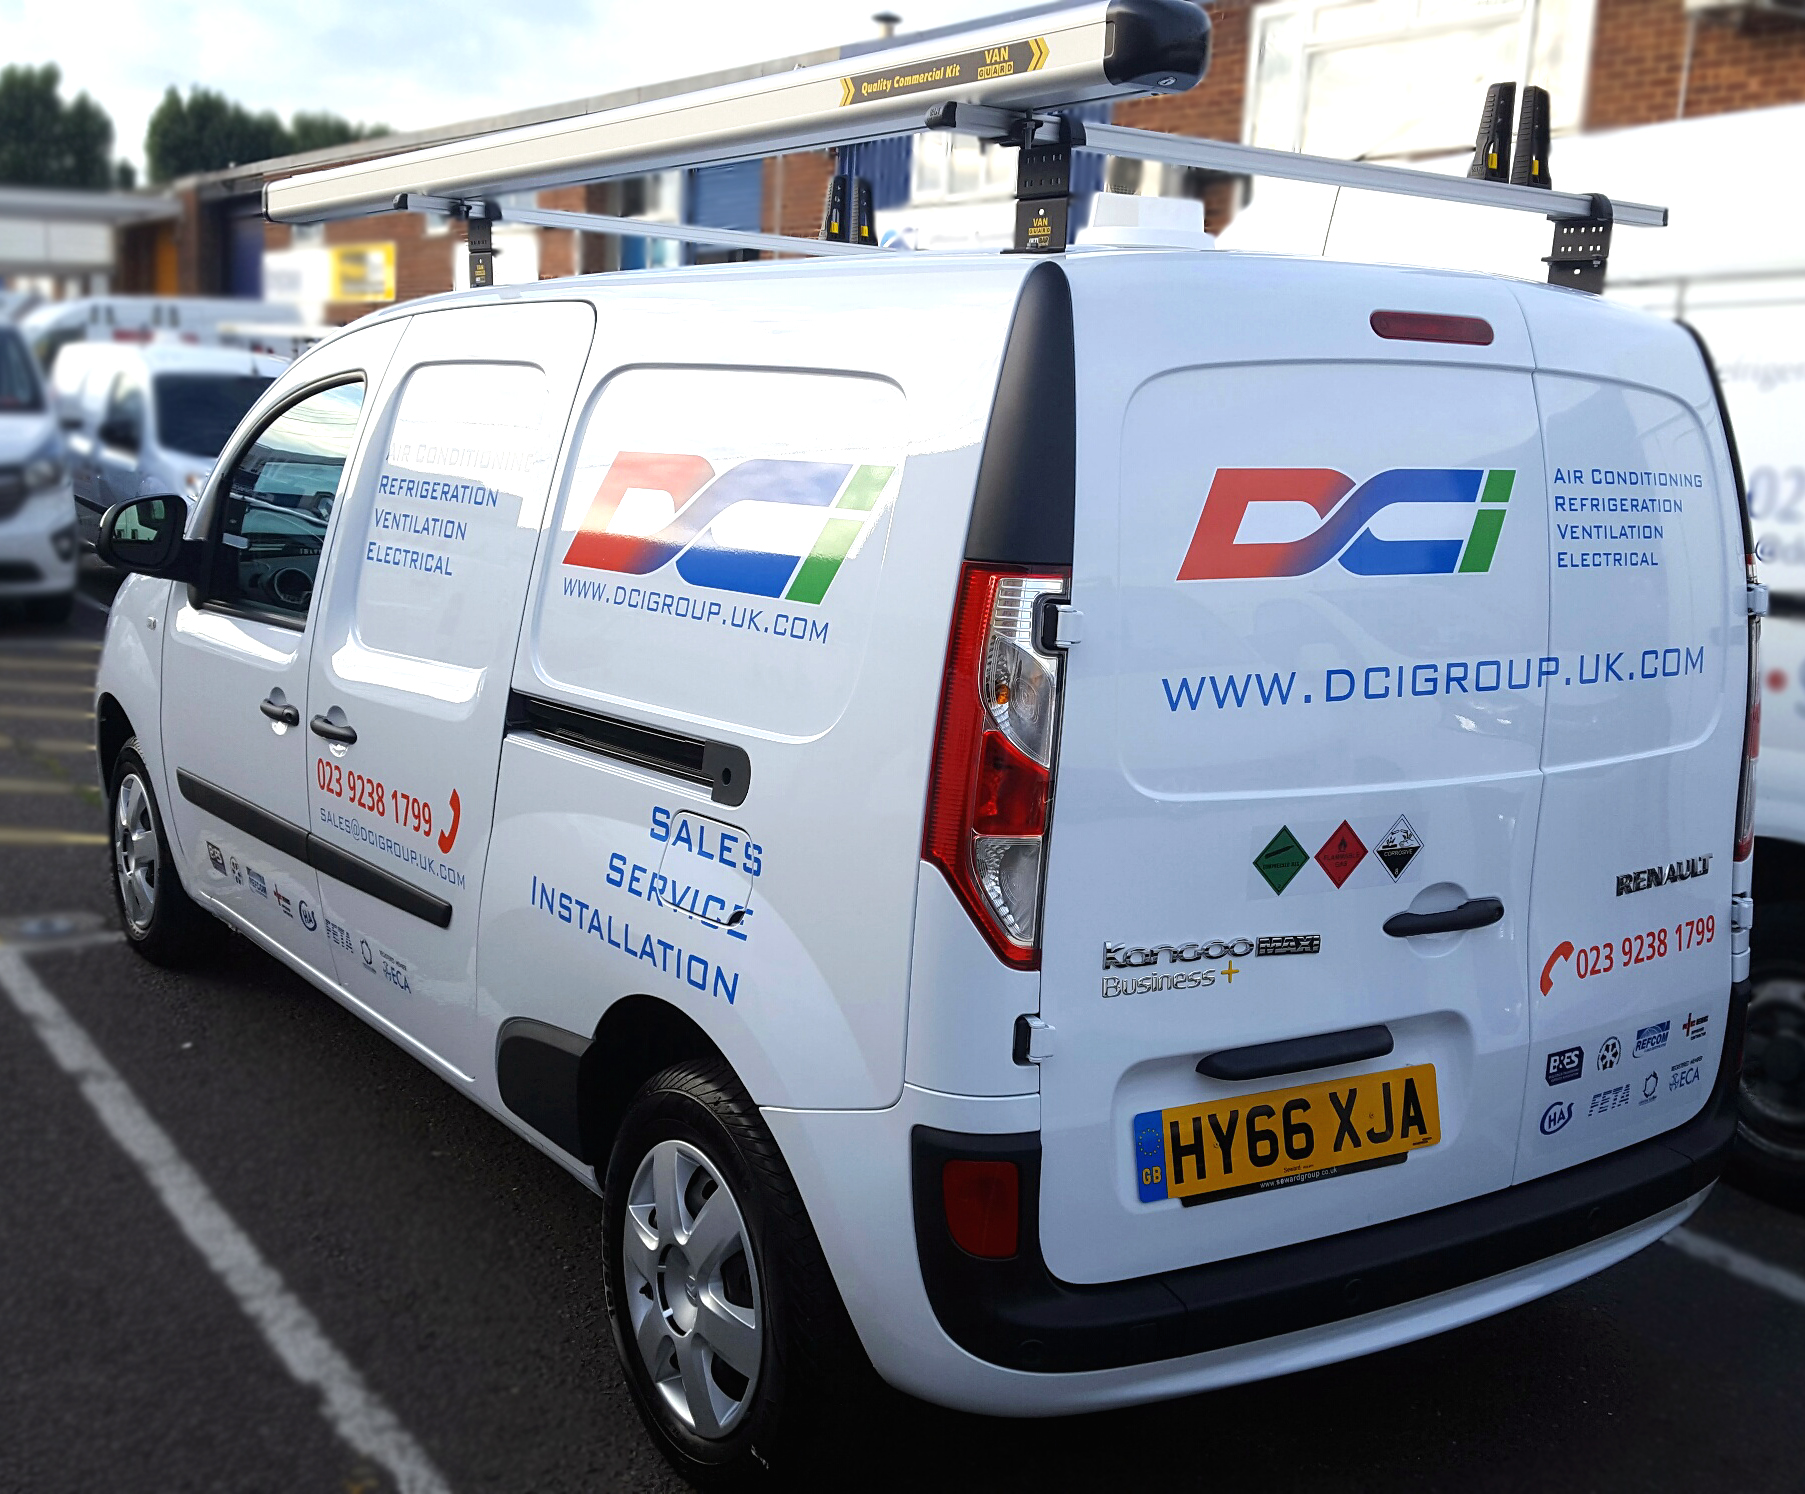 DCI's air conditioning & refrigeration service Renault Kangoo vans